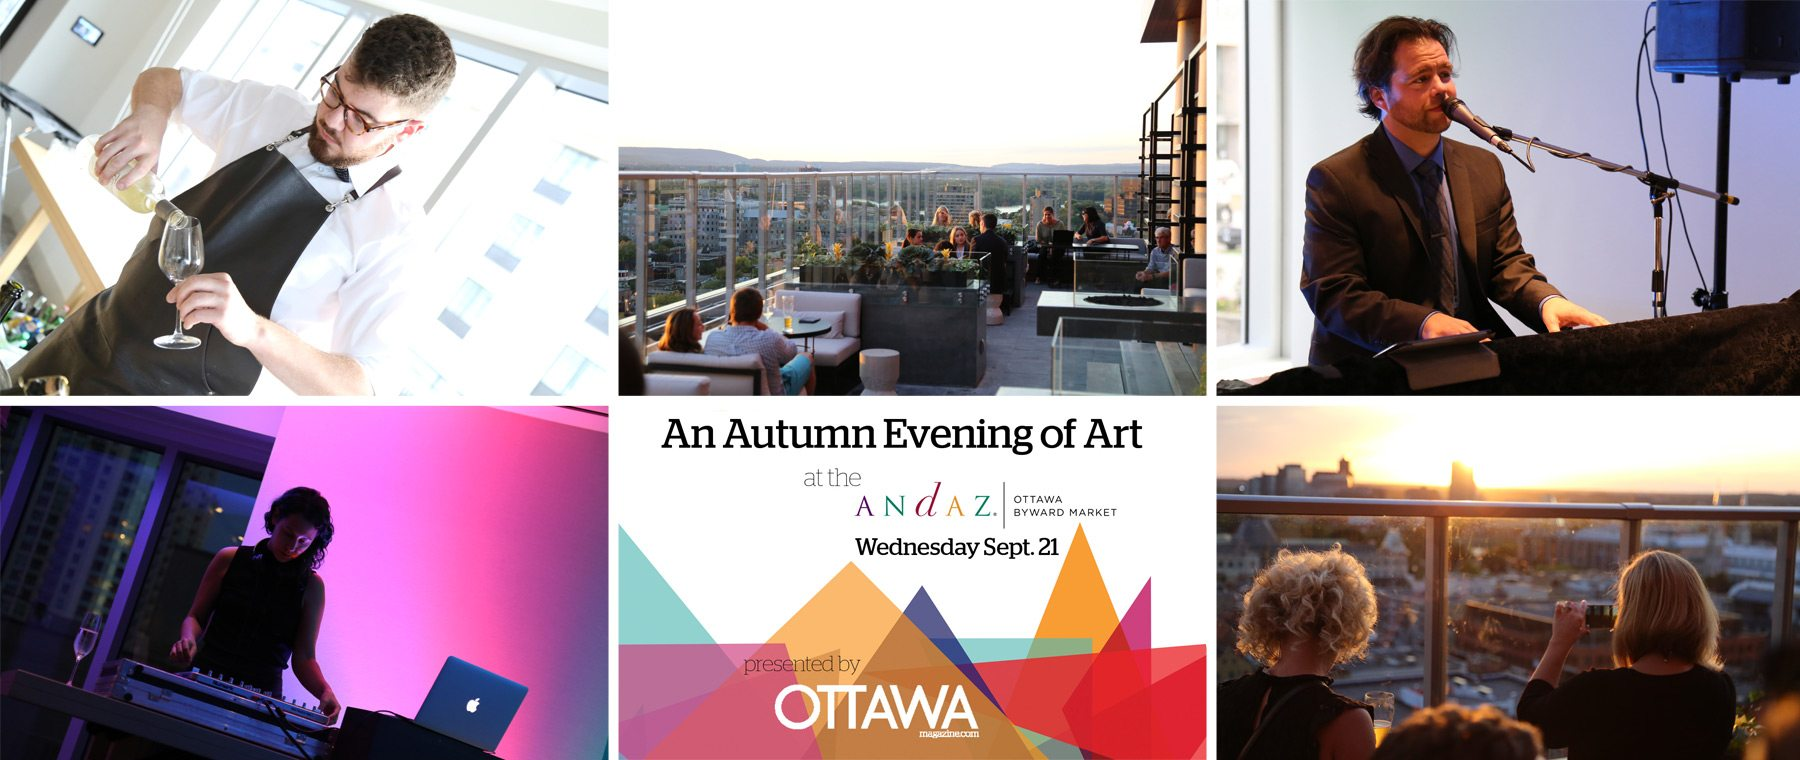 Autumn Evening of Art at Andaz Hotel a Smashing, Sold-Out Success